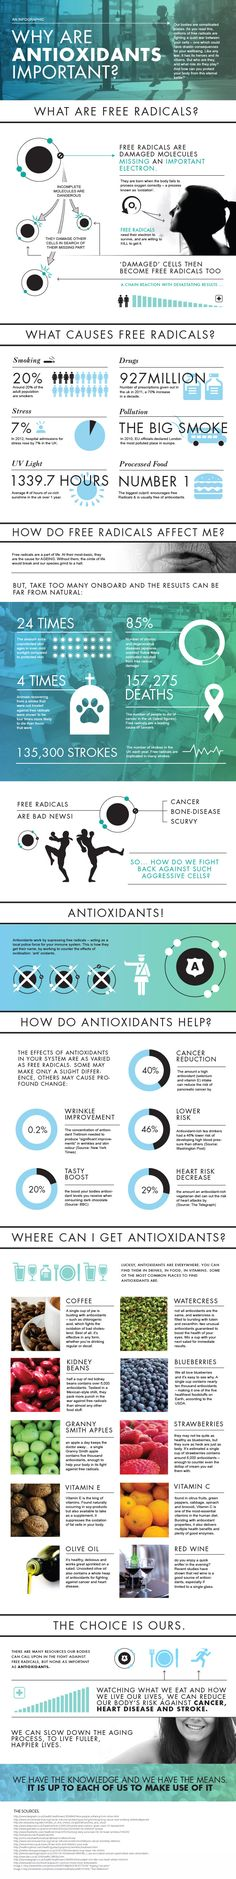 Tea has far more than coffee!! Antioxidants are important! Start your day right with Reserve from Jeuness - have a look at the details on the below website! http://www.helengarratt.jeunesseglobal.com